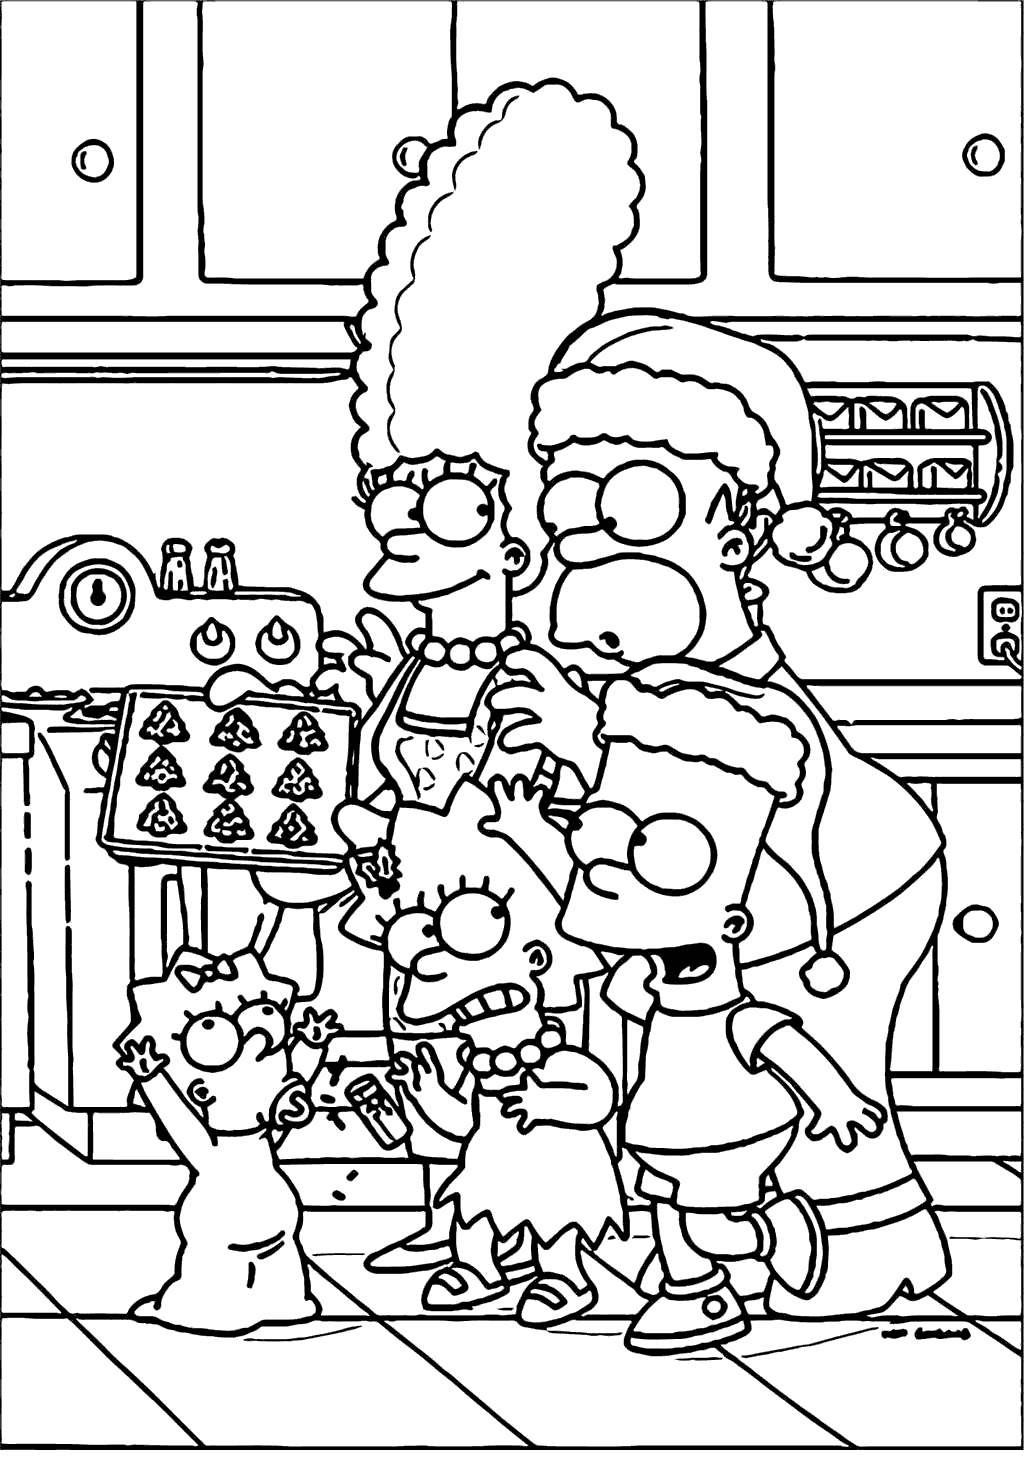 Anti Bullying Coloring Pages No C Free Printable Coloring